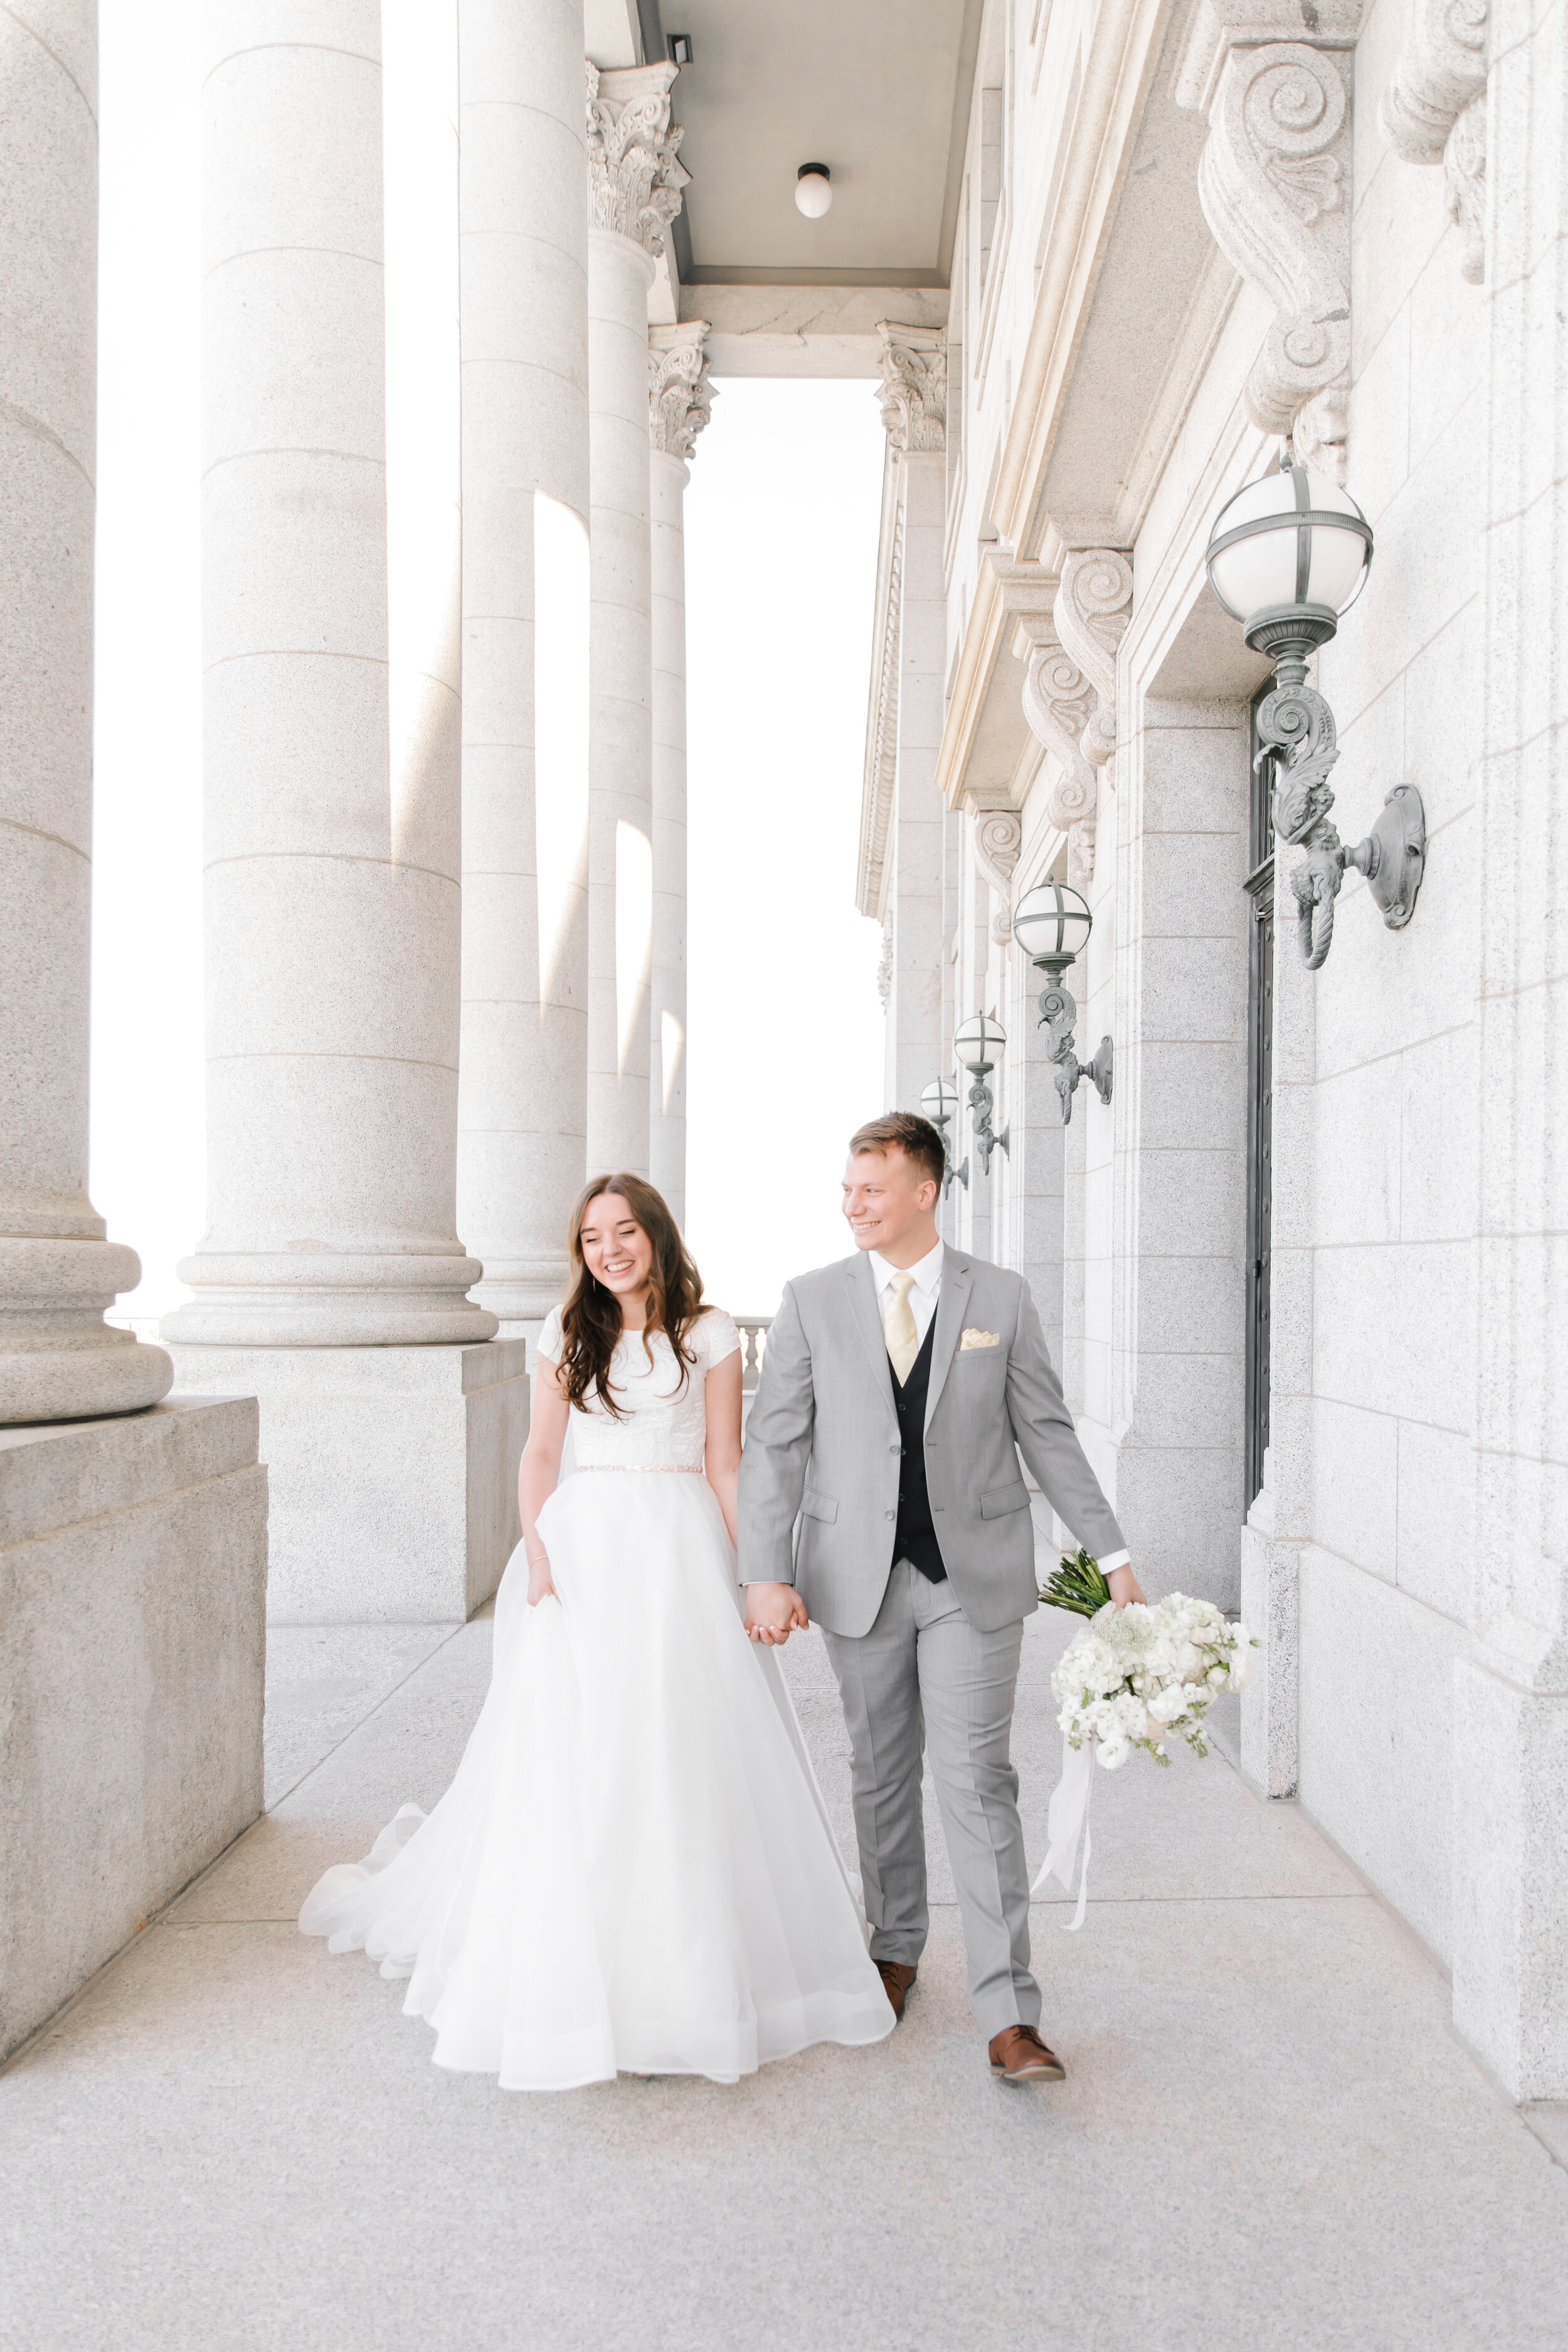 bright and clean sophisticated bridals wedding photography style utah state capitol savanna with clarity lane professional wedding photography available for travel outside of utah modest wedding gown lds wedding photographer